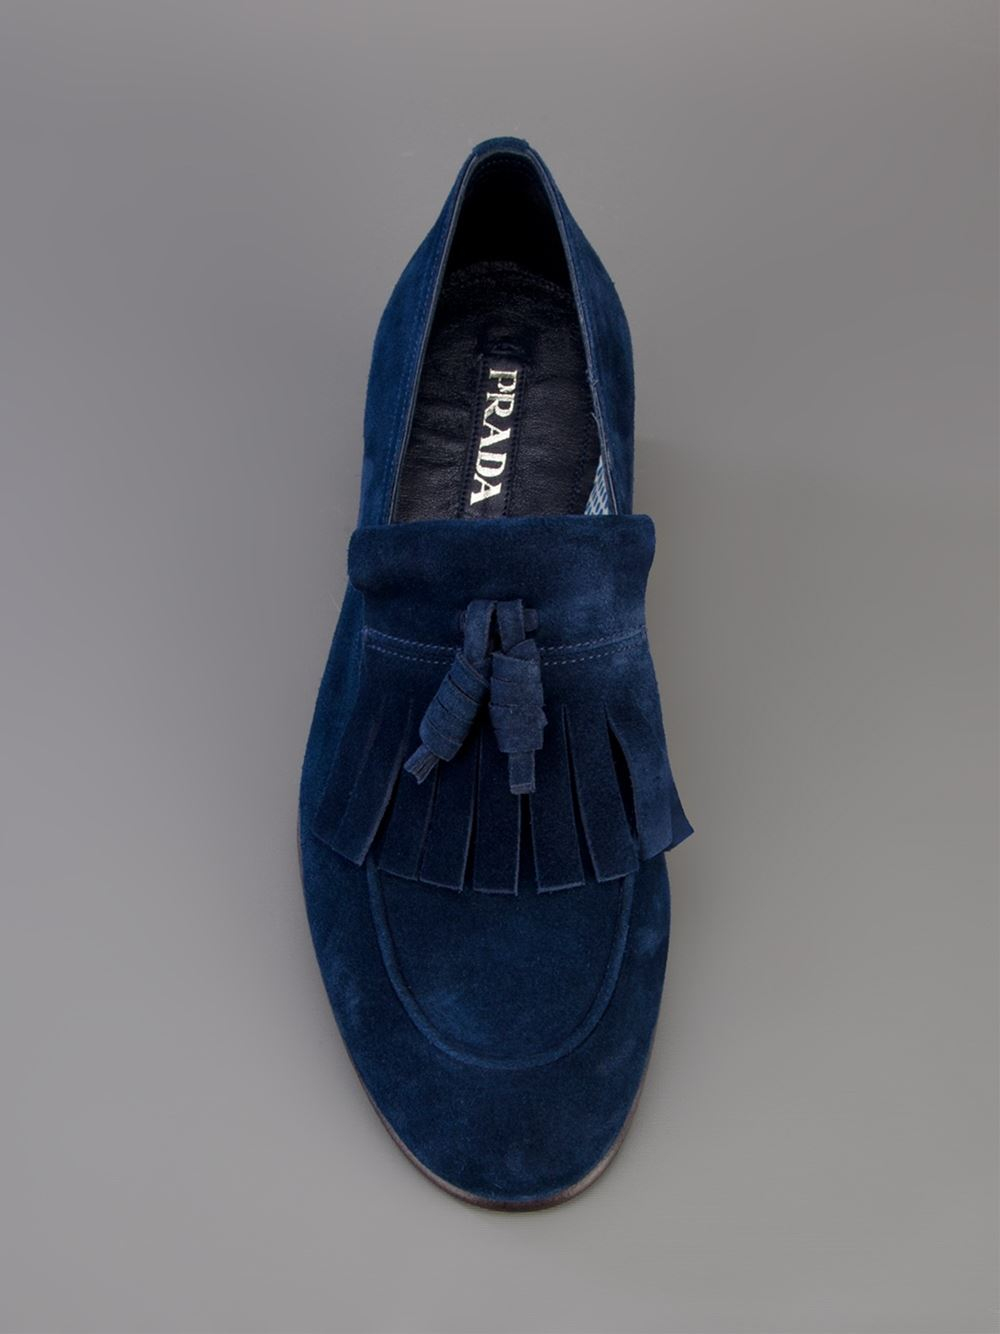 Prada Suede Tassel Loafers Buy Cheap Hot Sale 2018 New Cheap Online Cheap Sale Comfortable Sale Amazon Cheap 100% Guaranteed BusqhUQNr